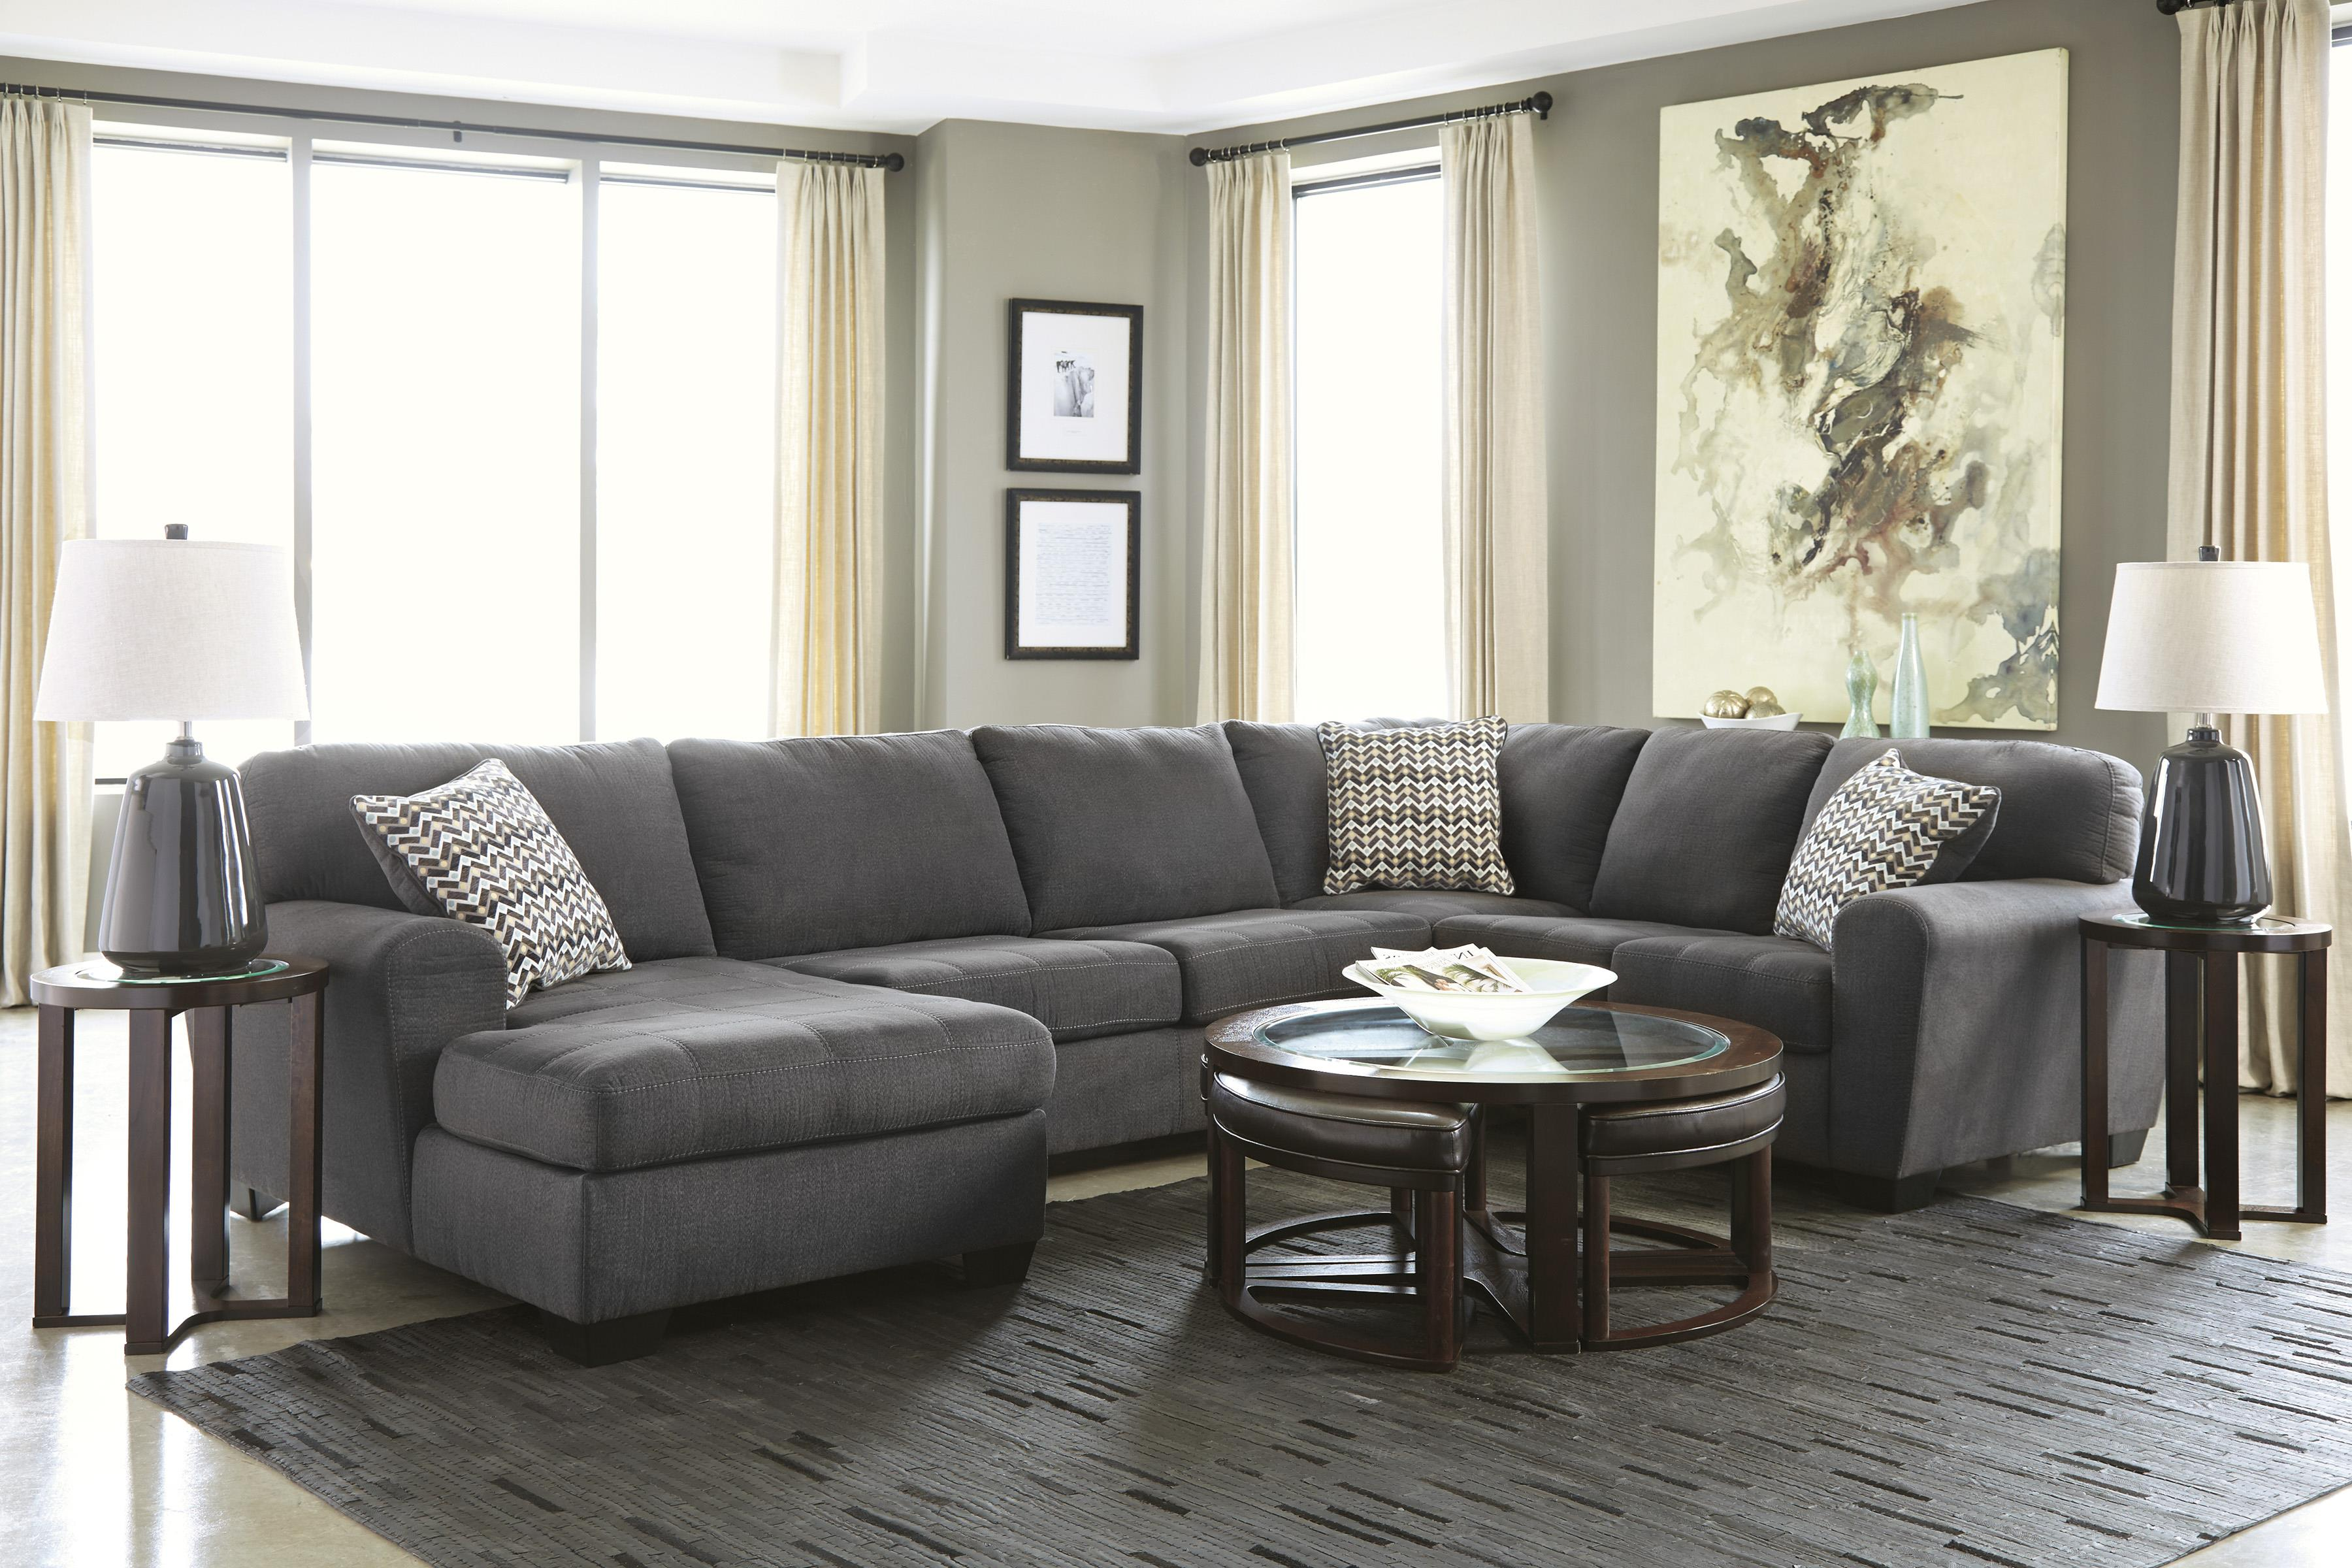 Contemporary 3 Piece Sectional With Left Chaise By Benchcraft Wolf And Gardiner Wolf Furniture